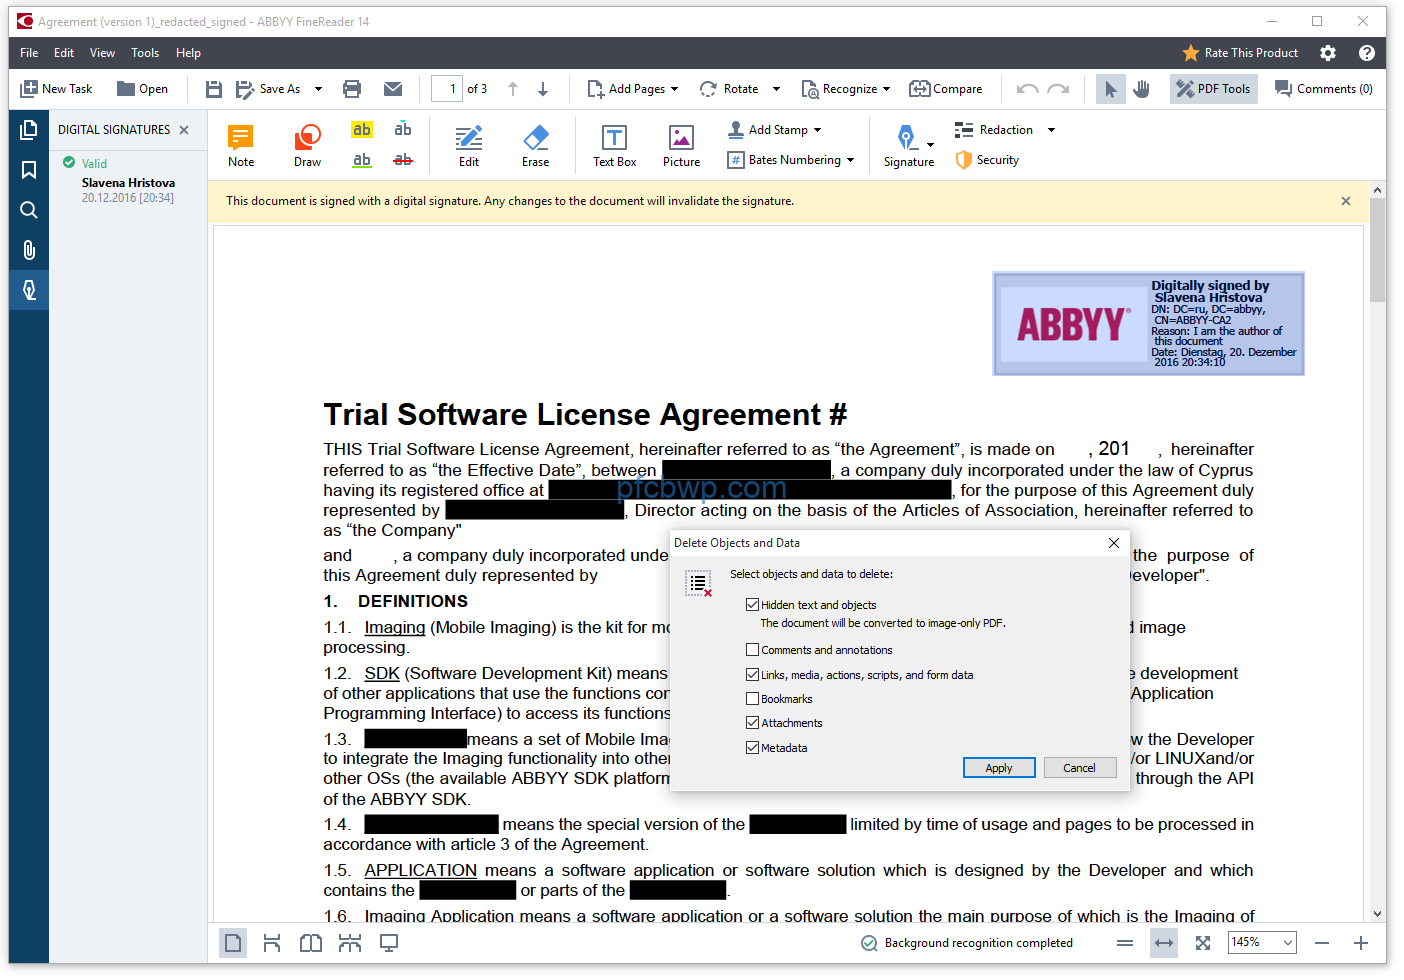 ABBYY Finereader 14 14.0.107.212 Activation With License Key Latest Full Free Download